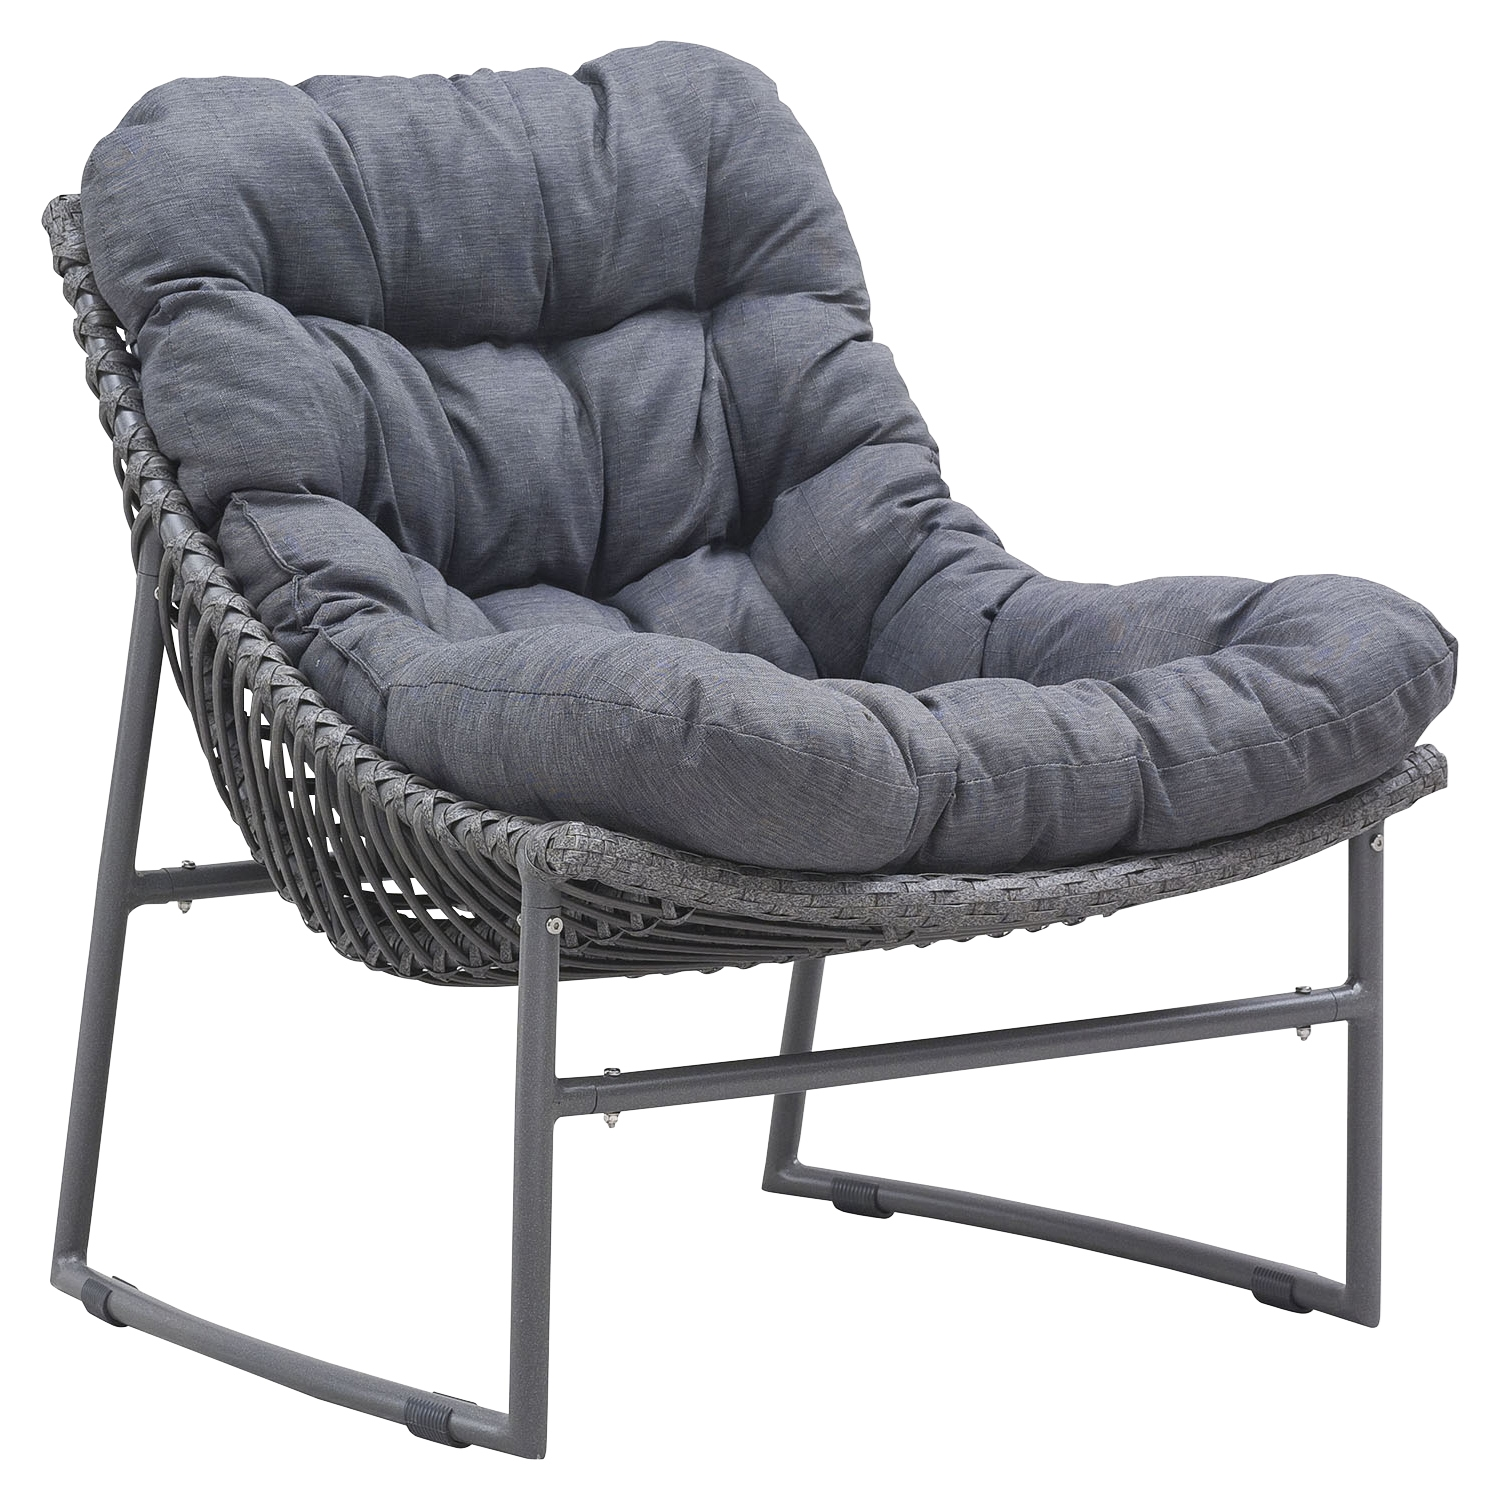 Ingonish Gray Beach Chair - ZM-703529